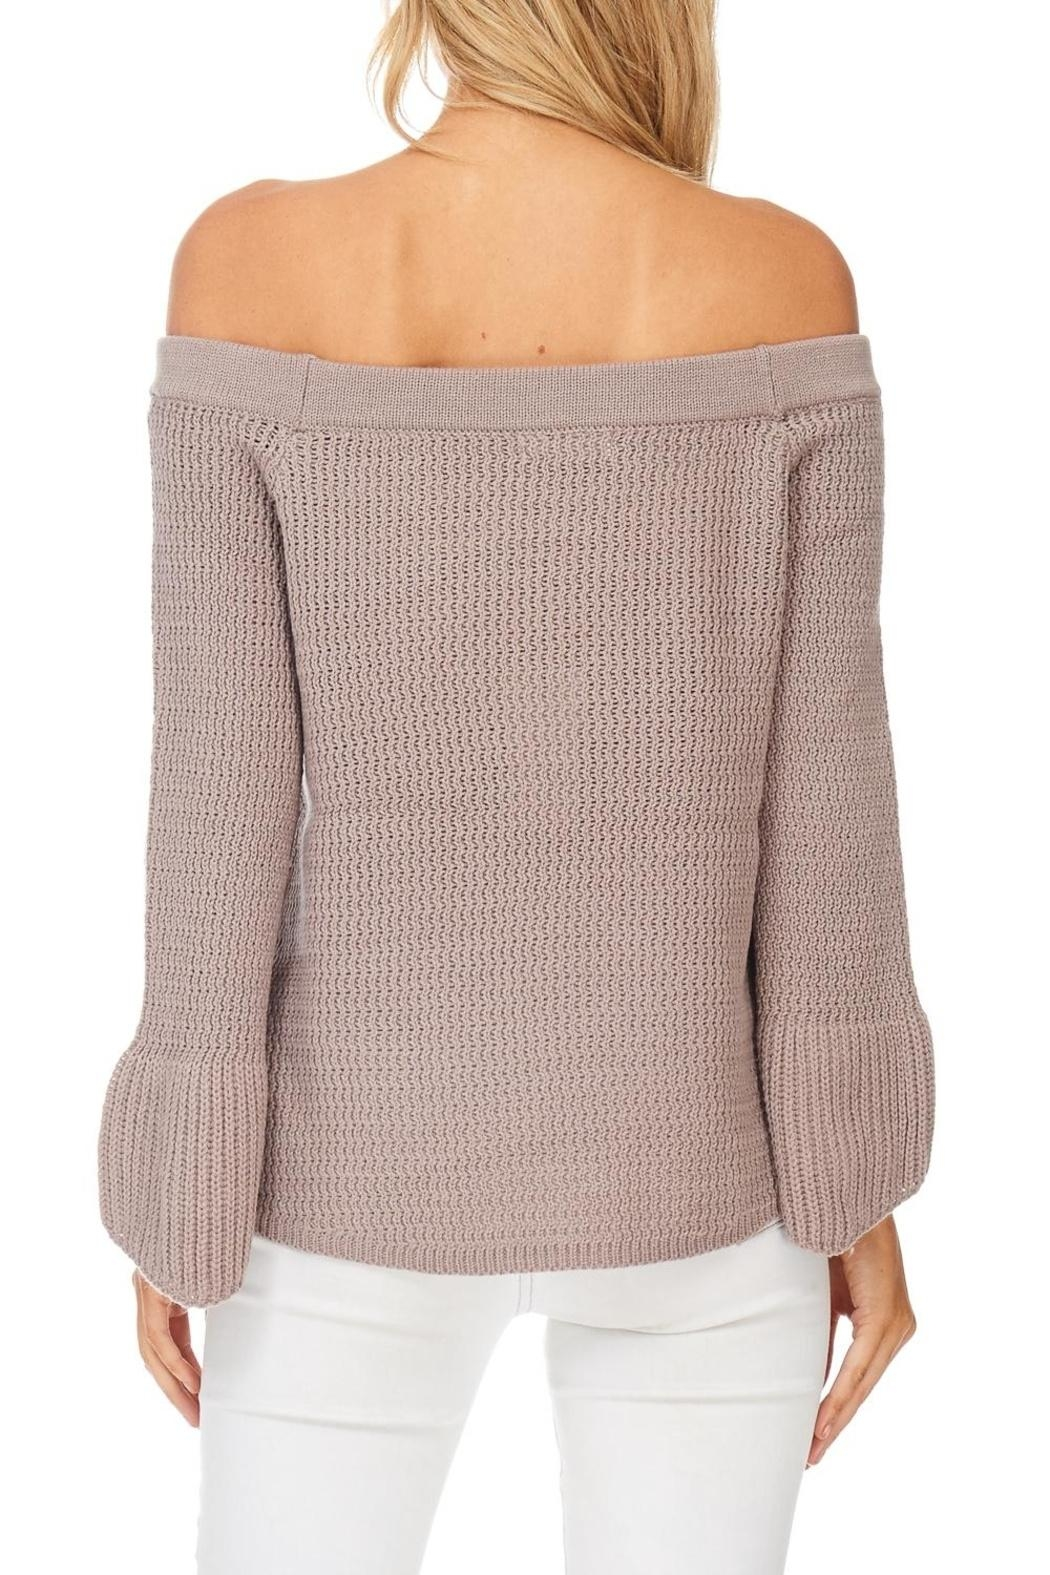 LoveRiche Mocha Sweater - Side Cropped Image